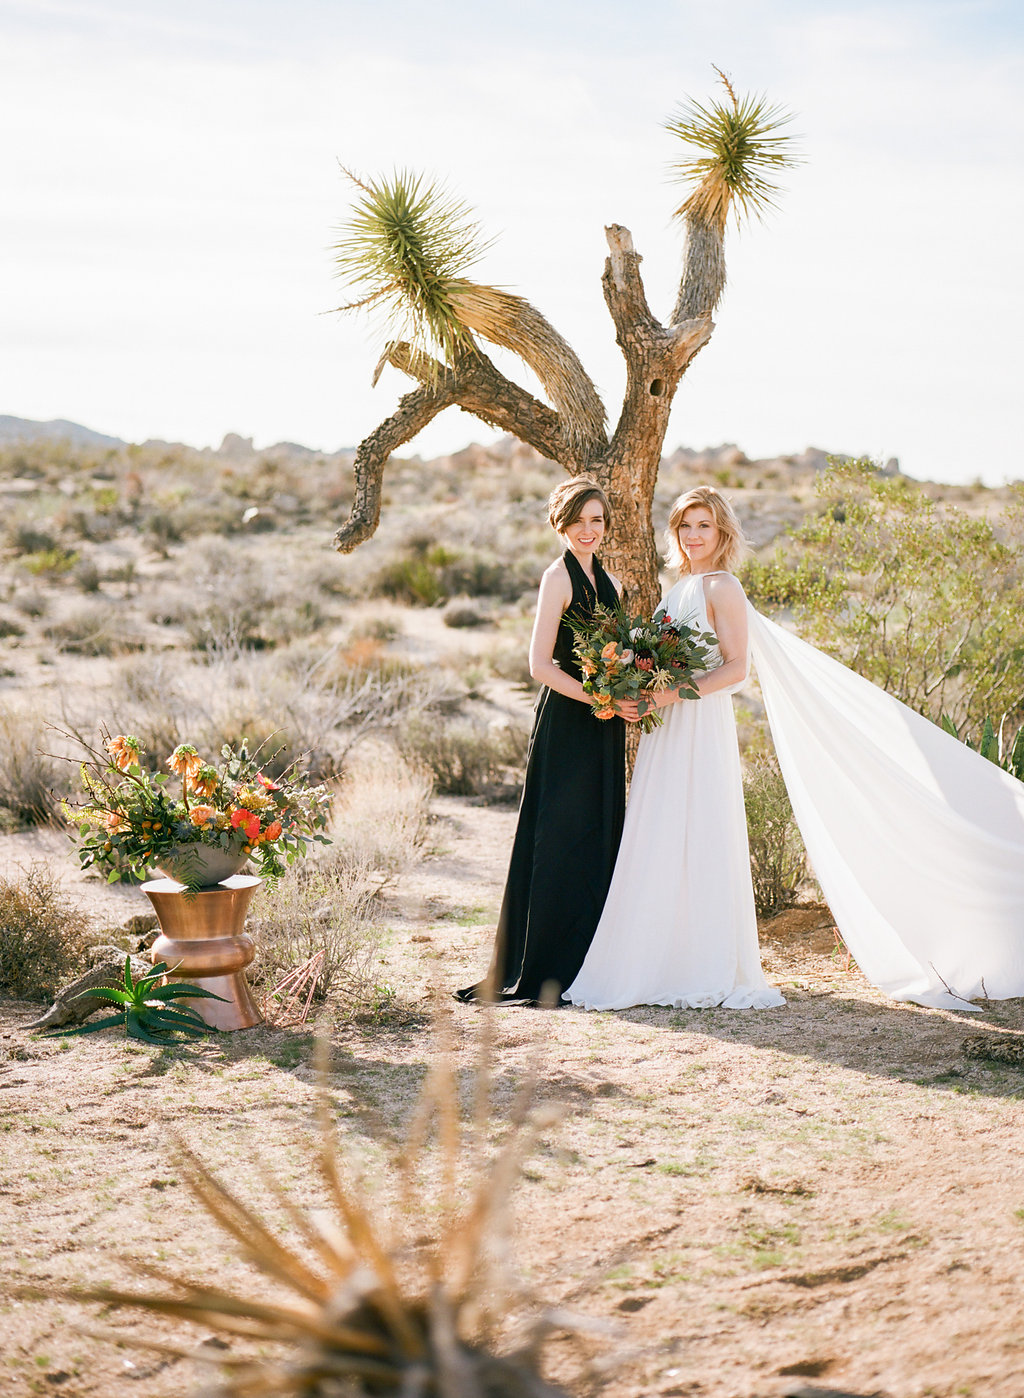 Jessica Schilling Wedding Photography couple in front of joshua tree